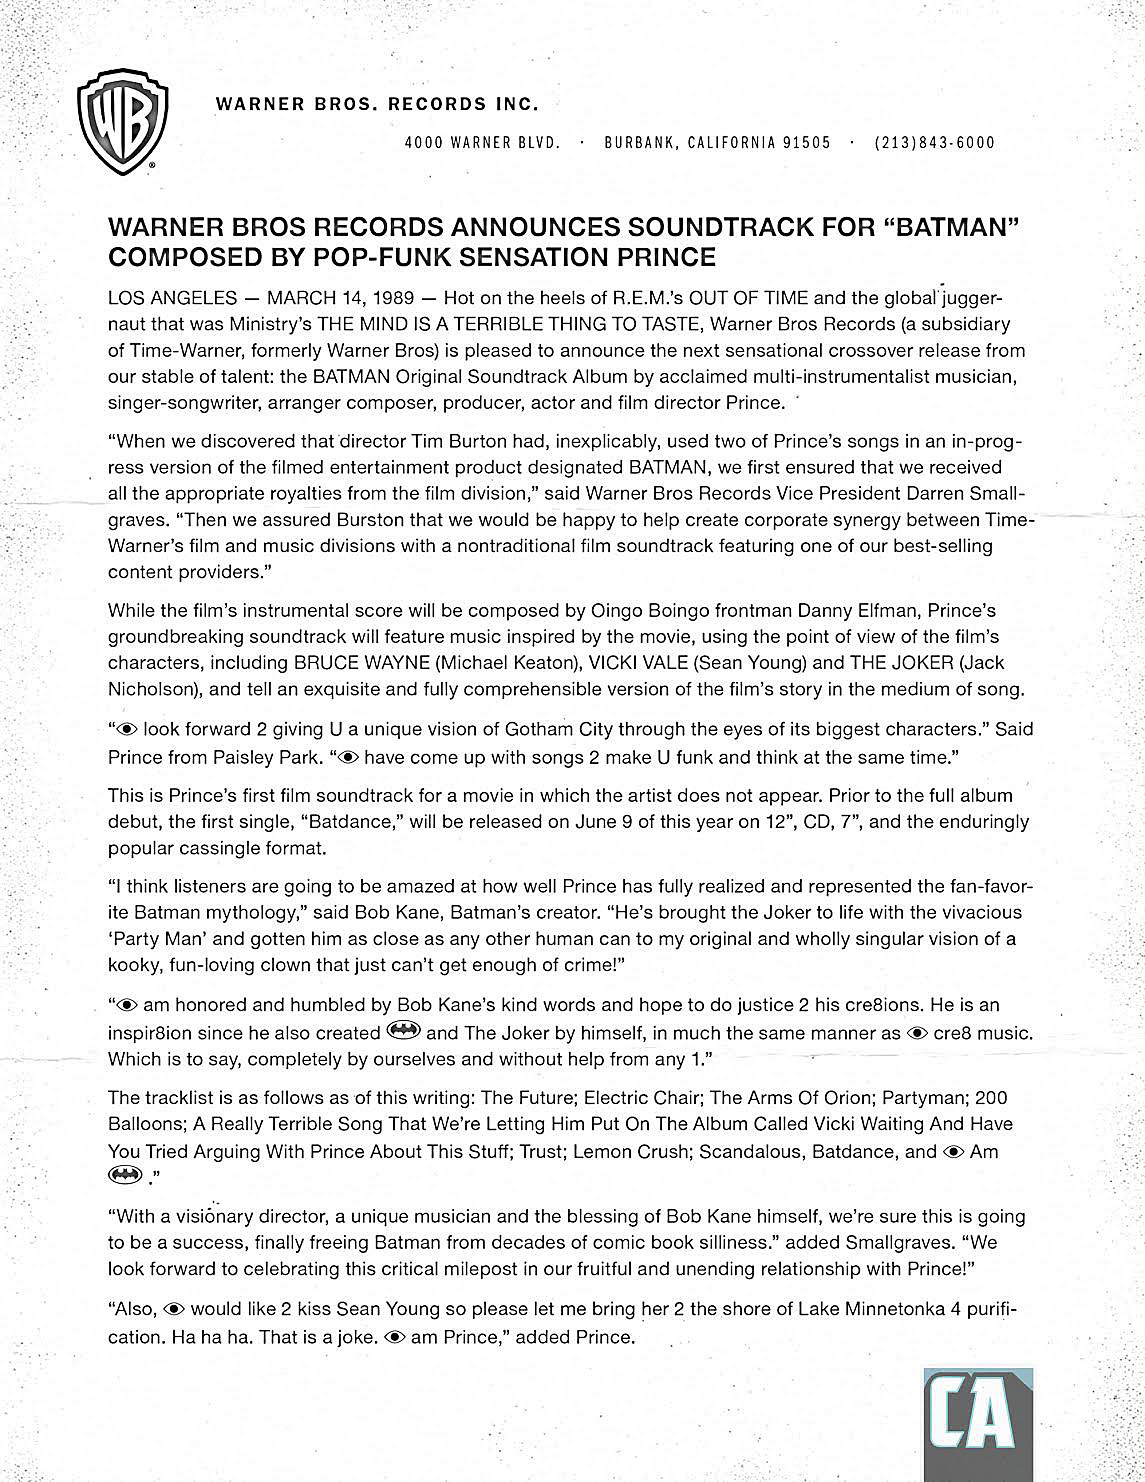 ComicsAlliance Prince Batman Soundtrack Press Release